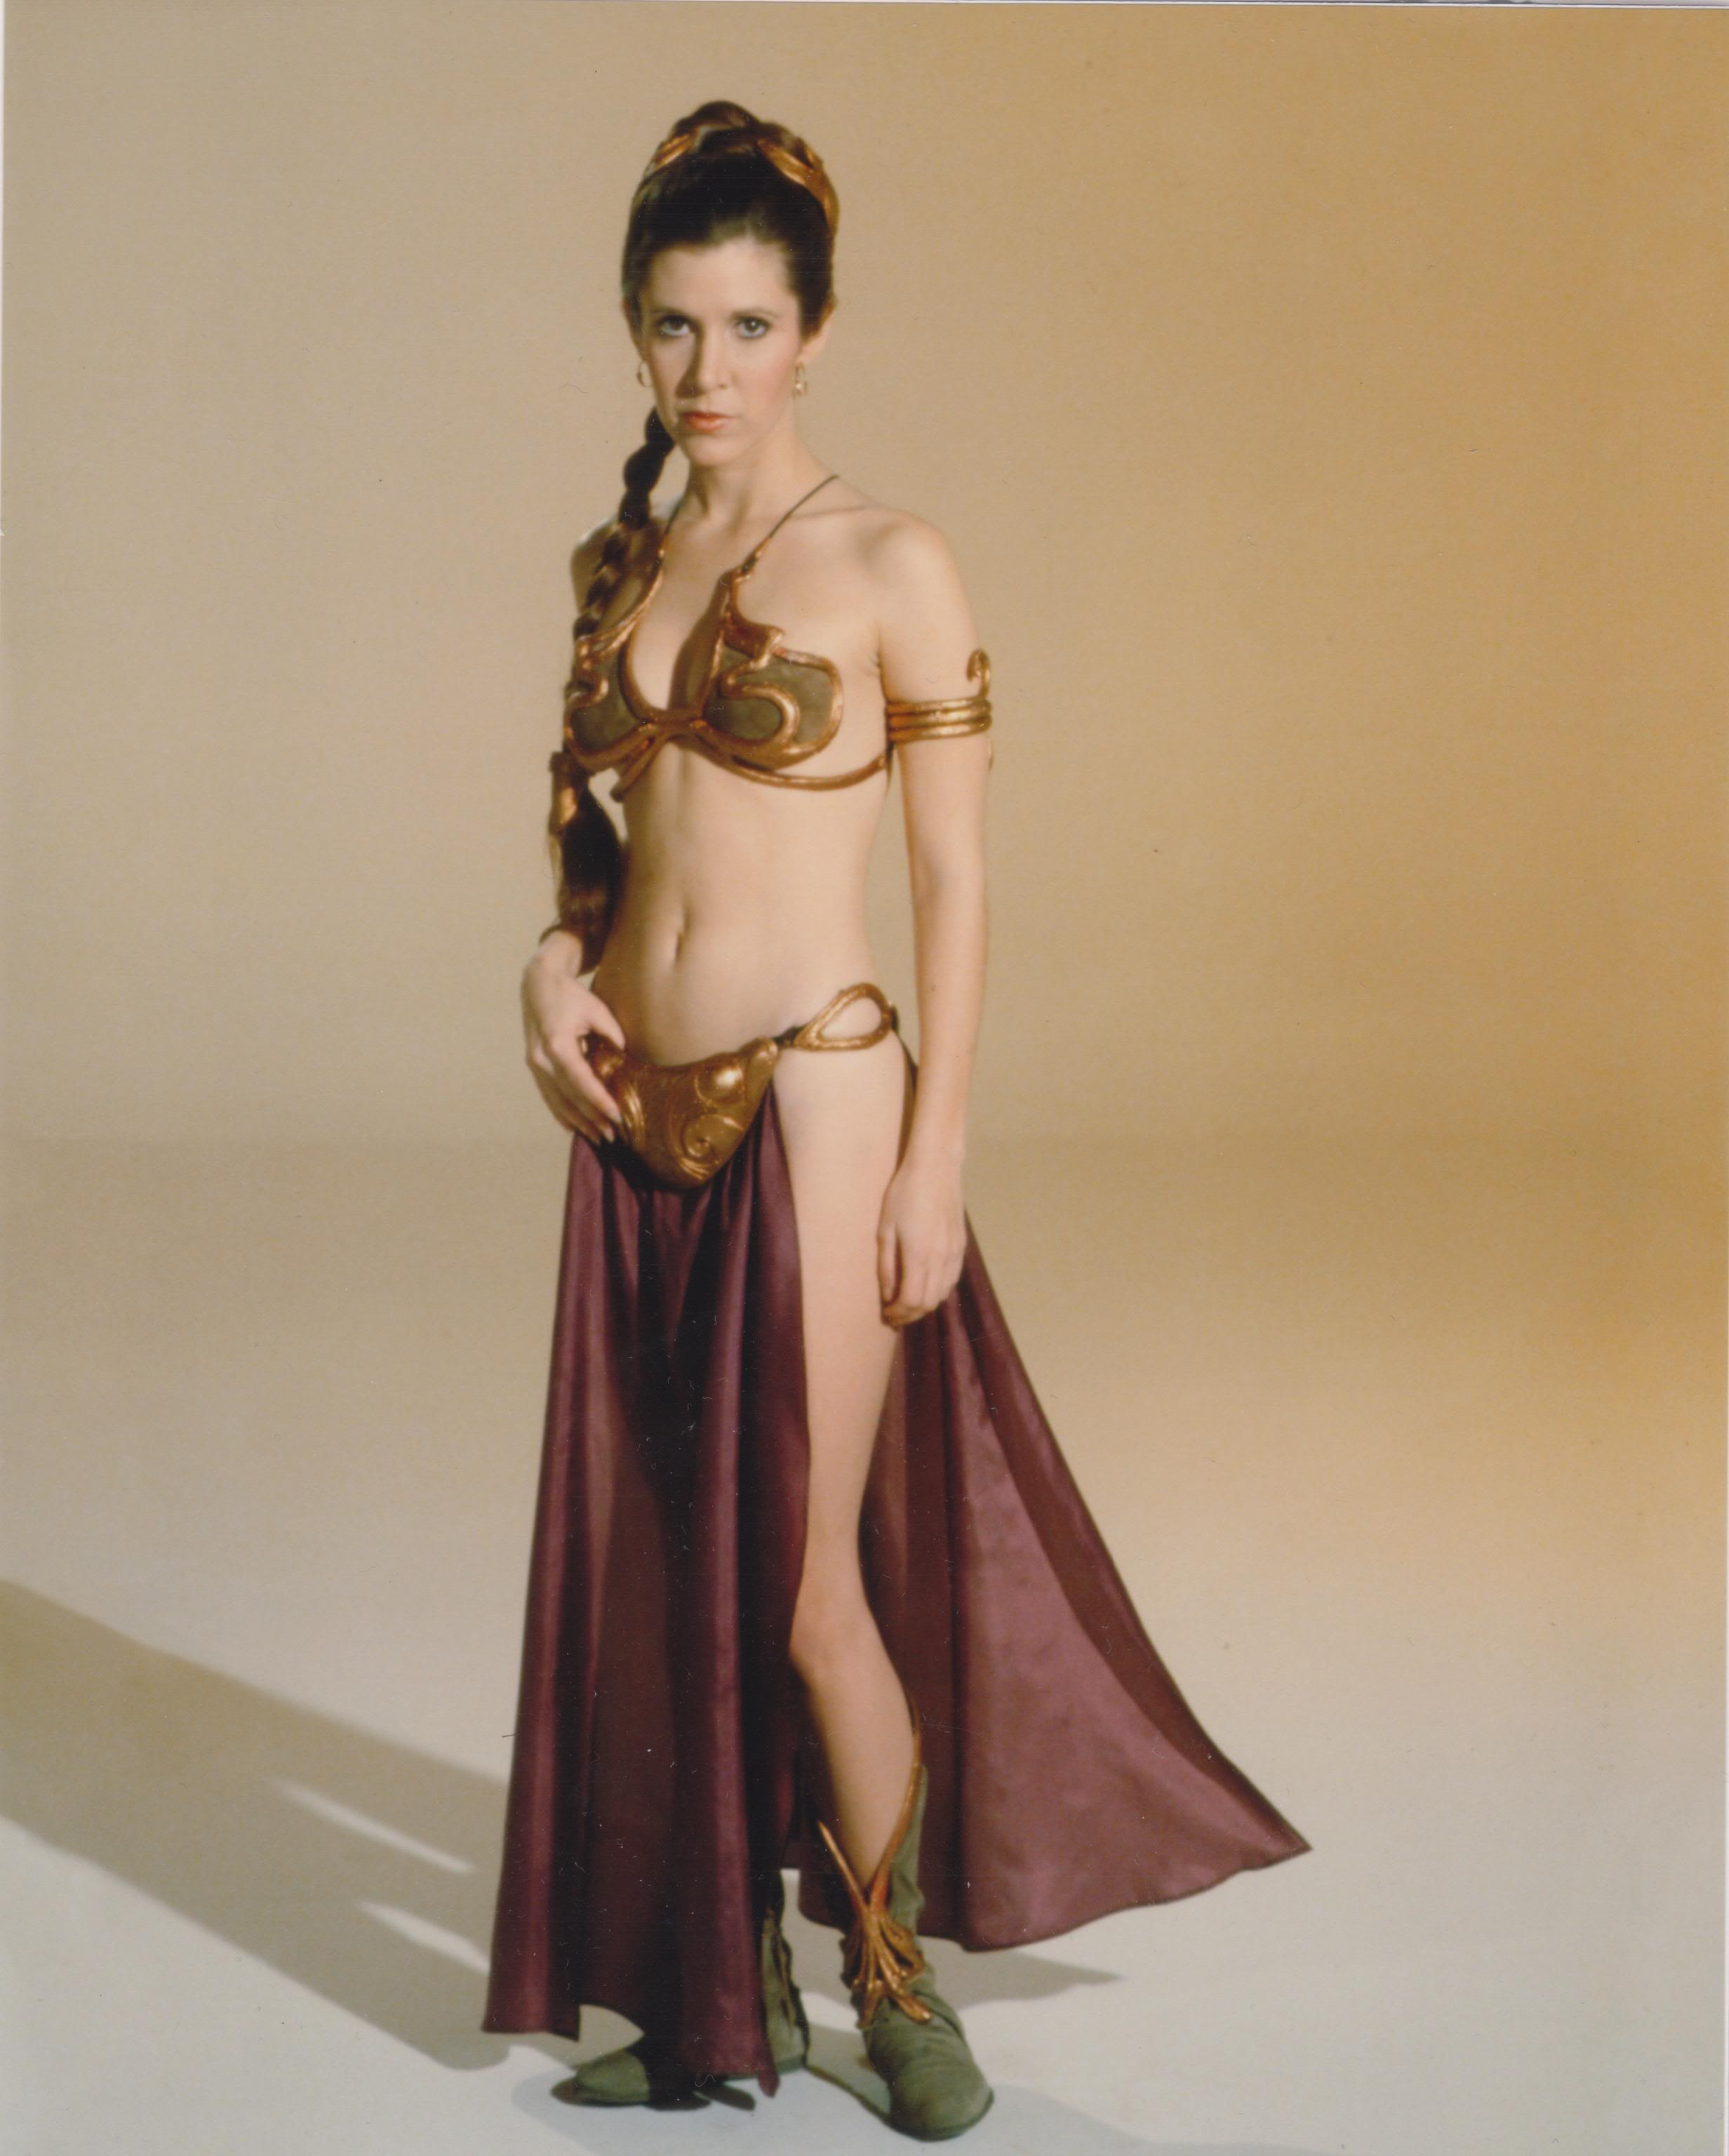 Star wars pussy sexy pictures